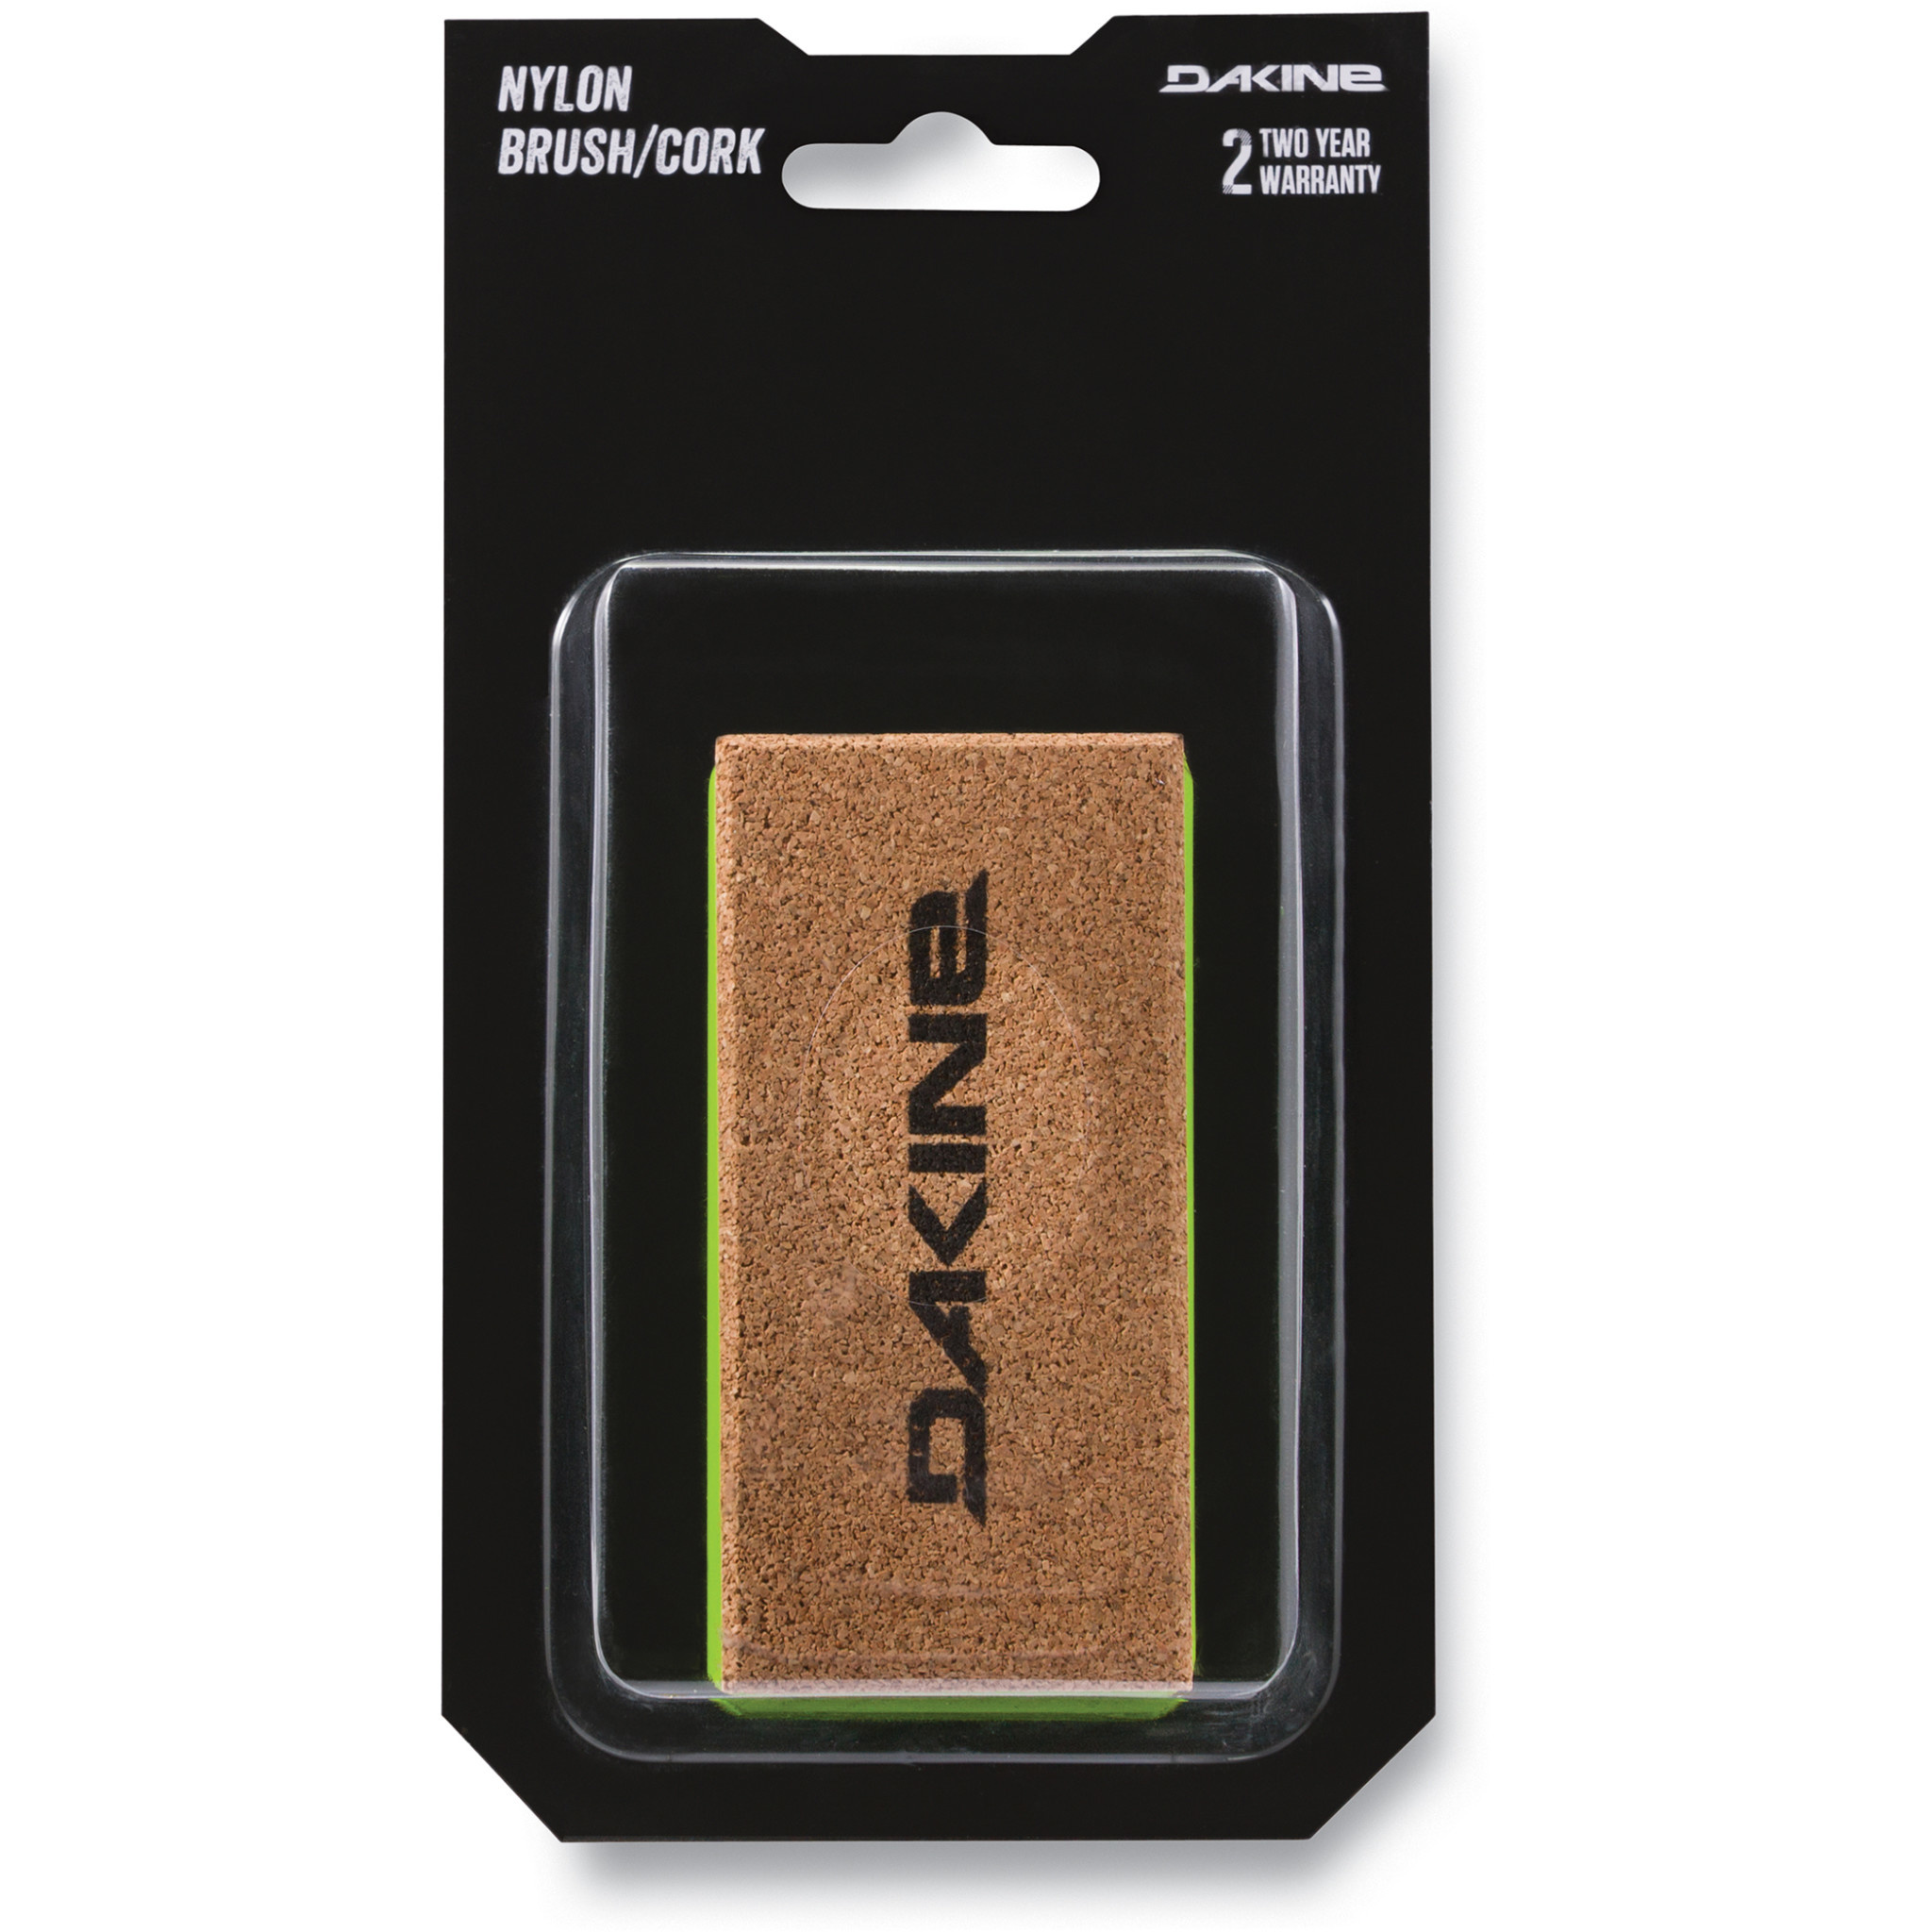 Dakine Dakine Nylon / Cork Brush